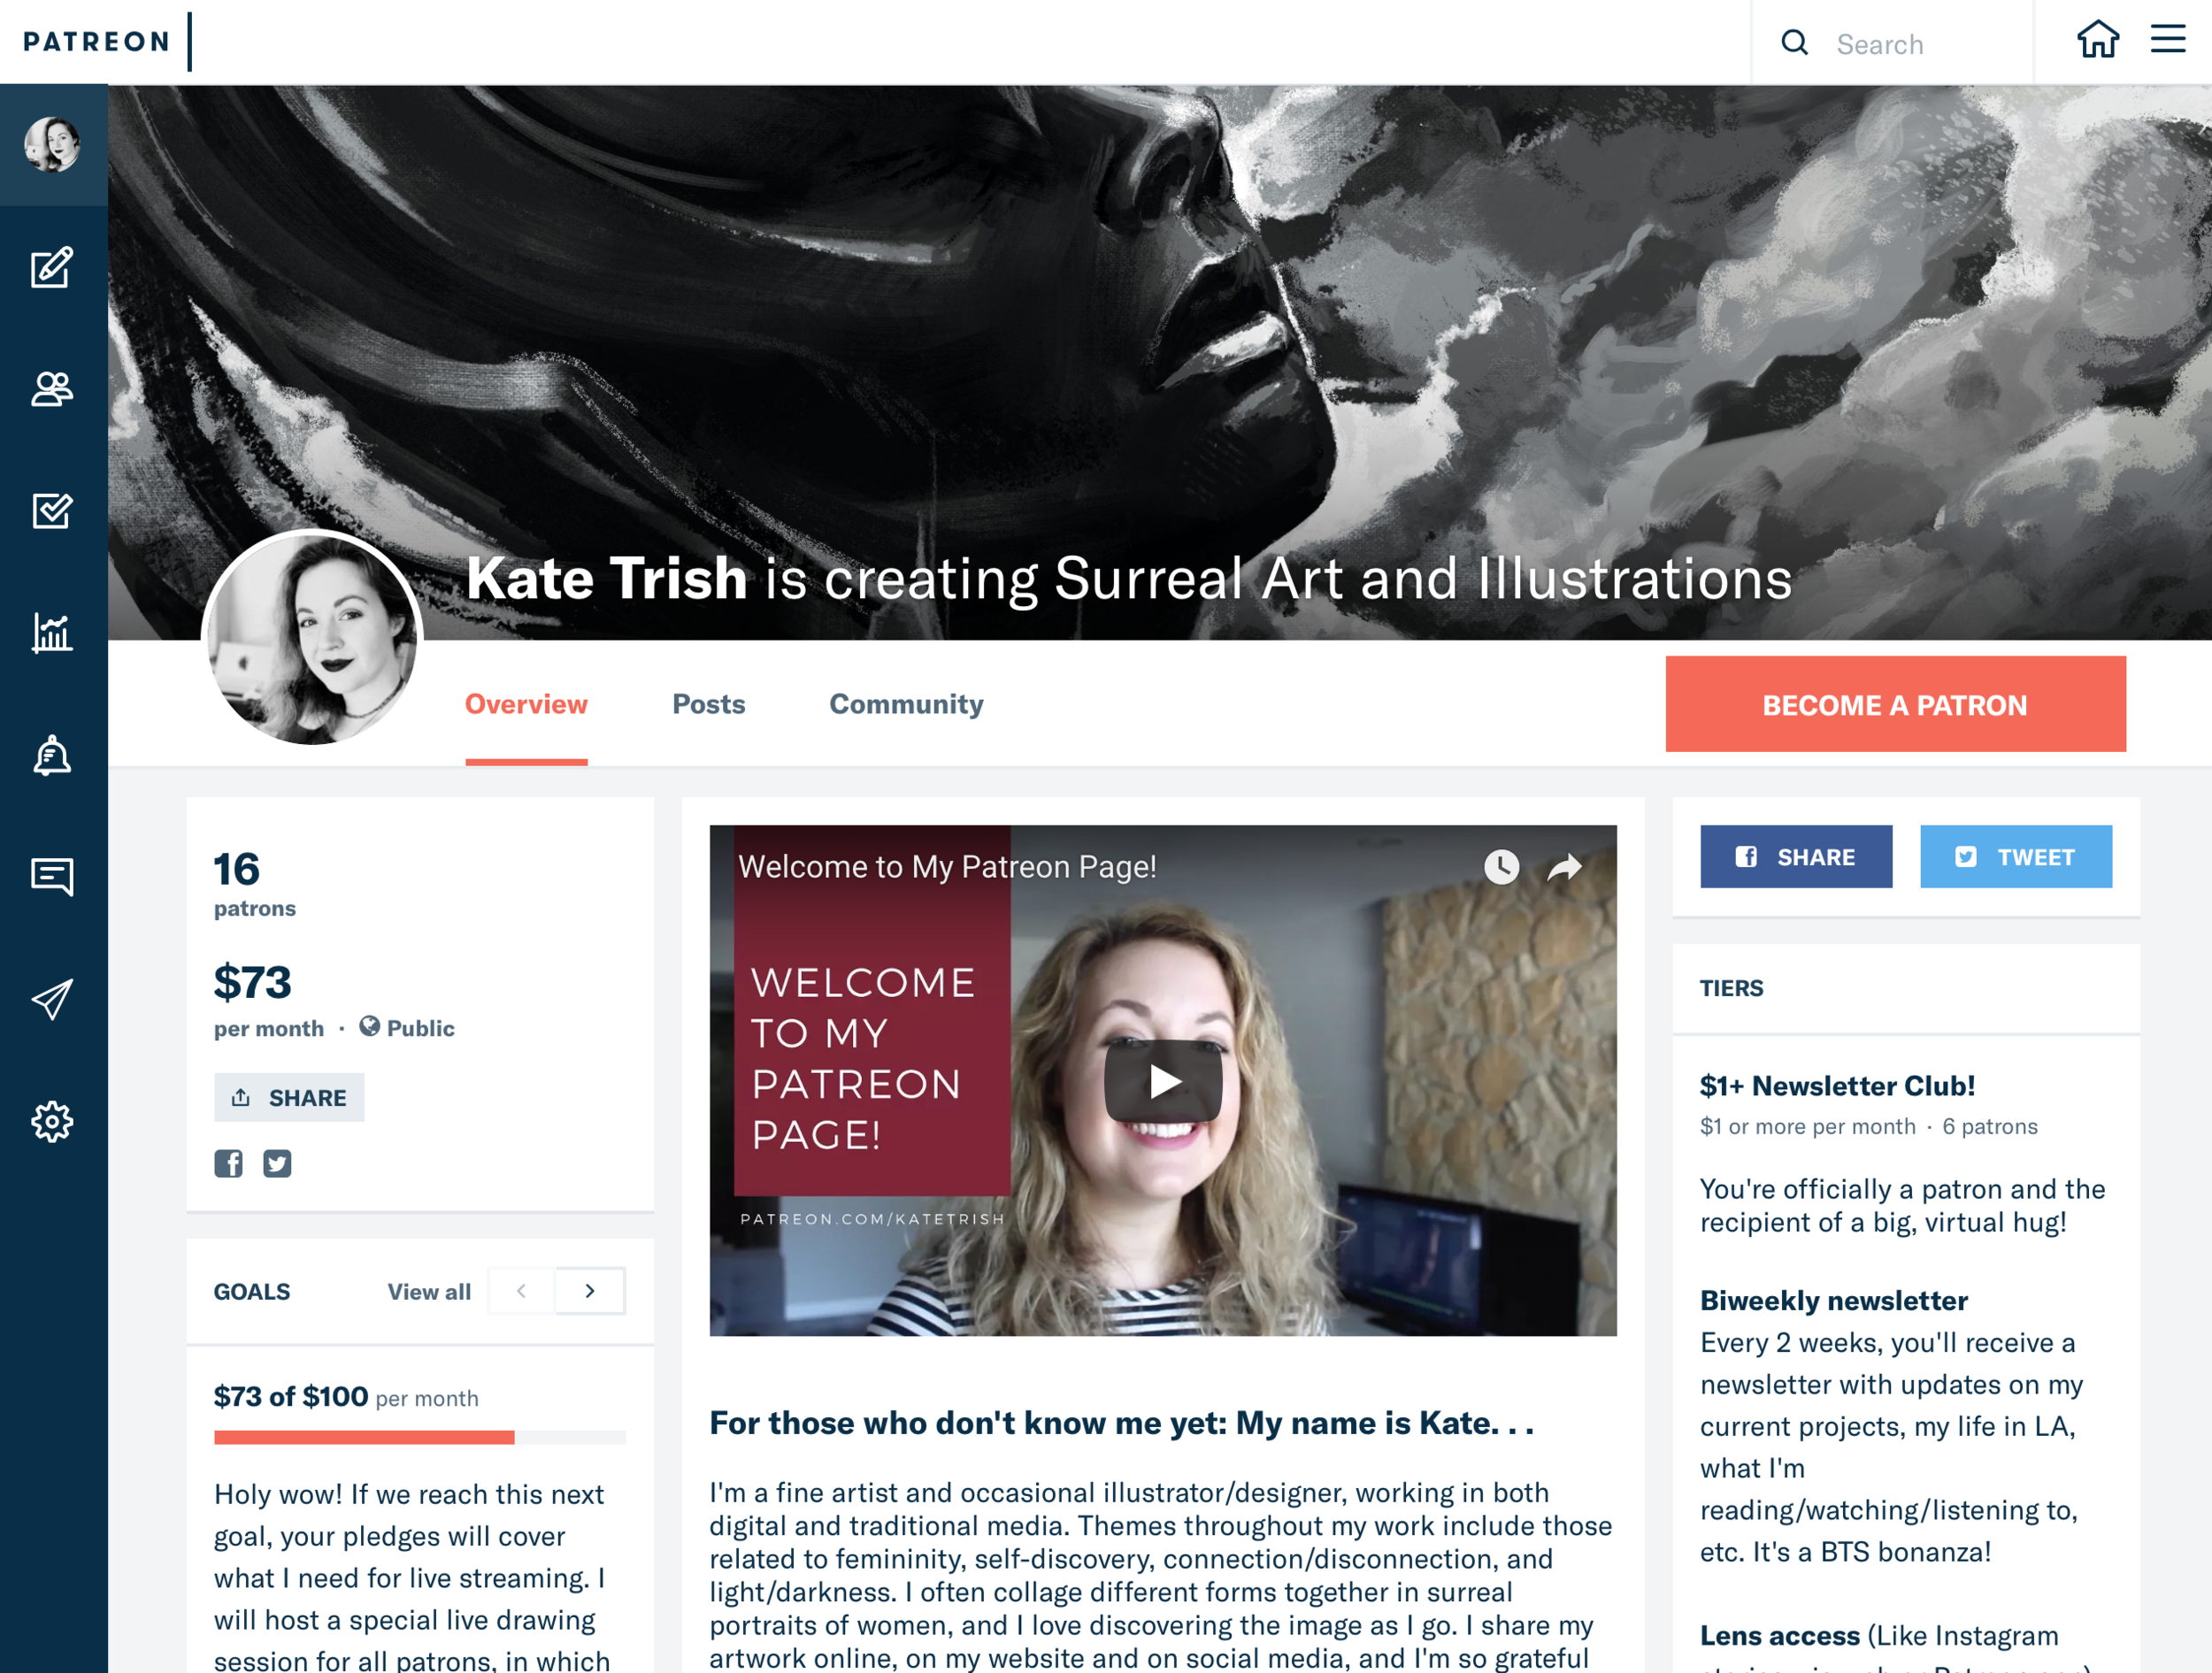 PATREON - You can become a patron to access exclusive behind-the-scenes content, process videos, bi-weekly newsletters, etc.